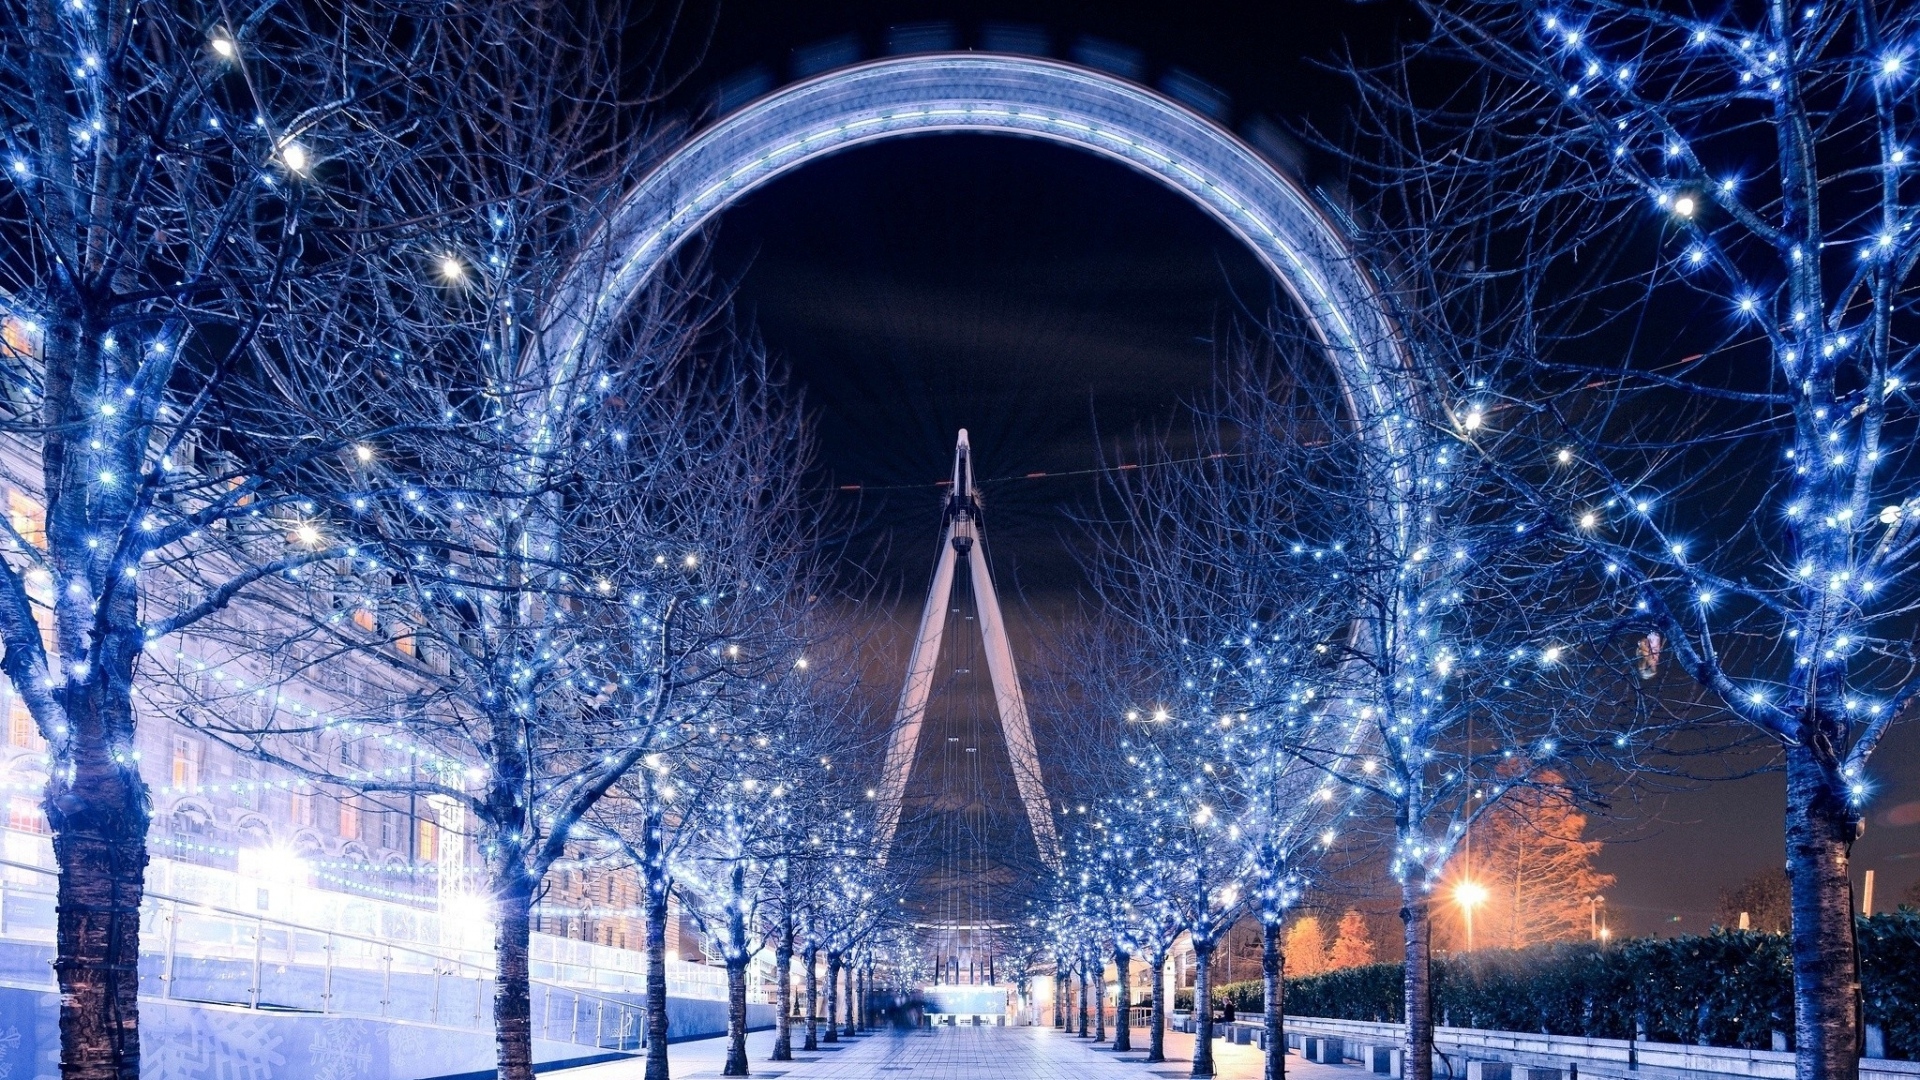 HD Hintergrundbilder Riesenrad Winter Schn London London